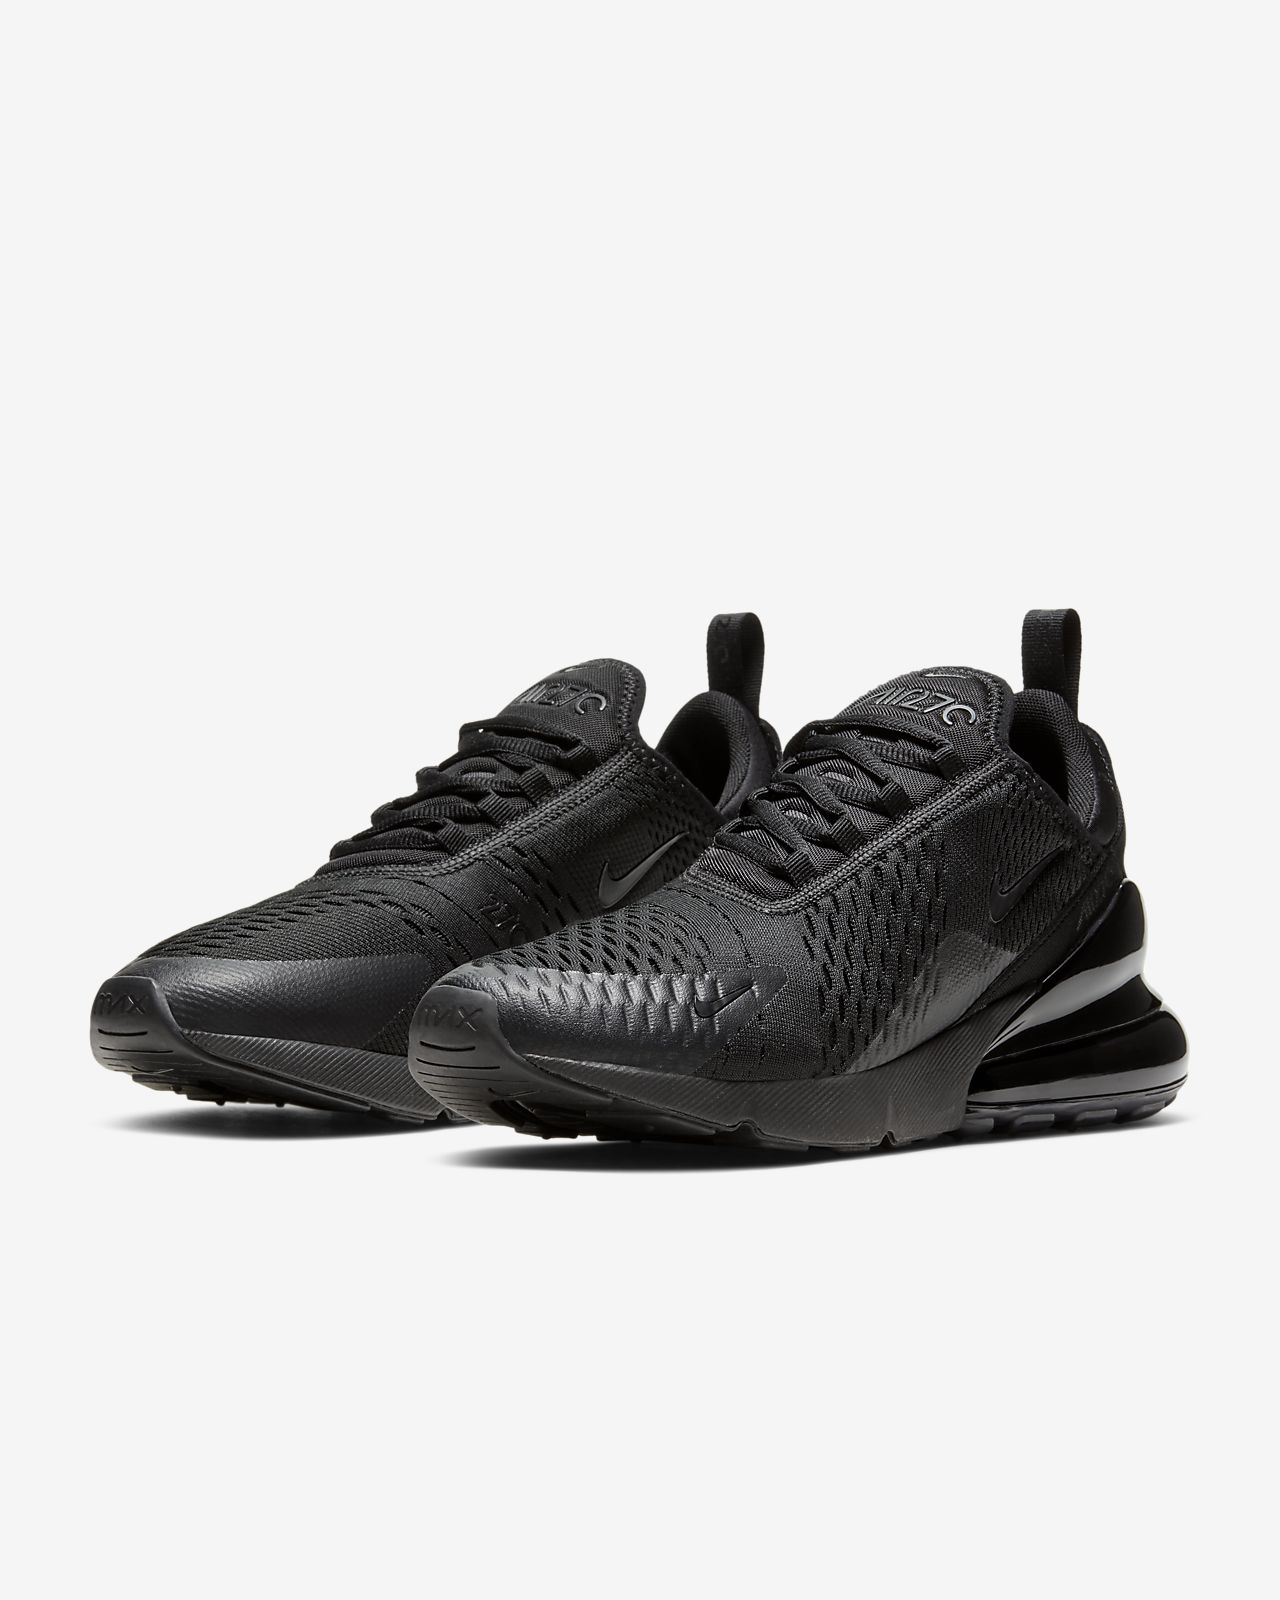 meet fd2e8 04a0c Men s Shoe. Nike Air Max 270